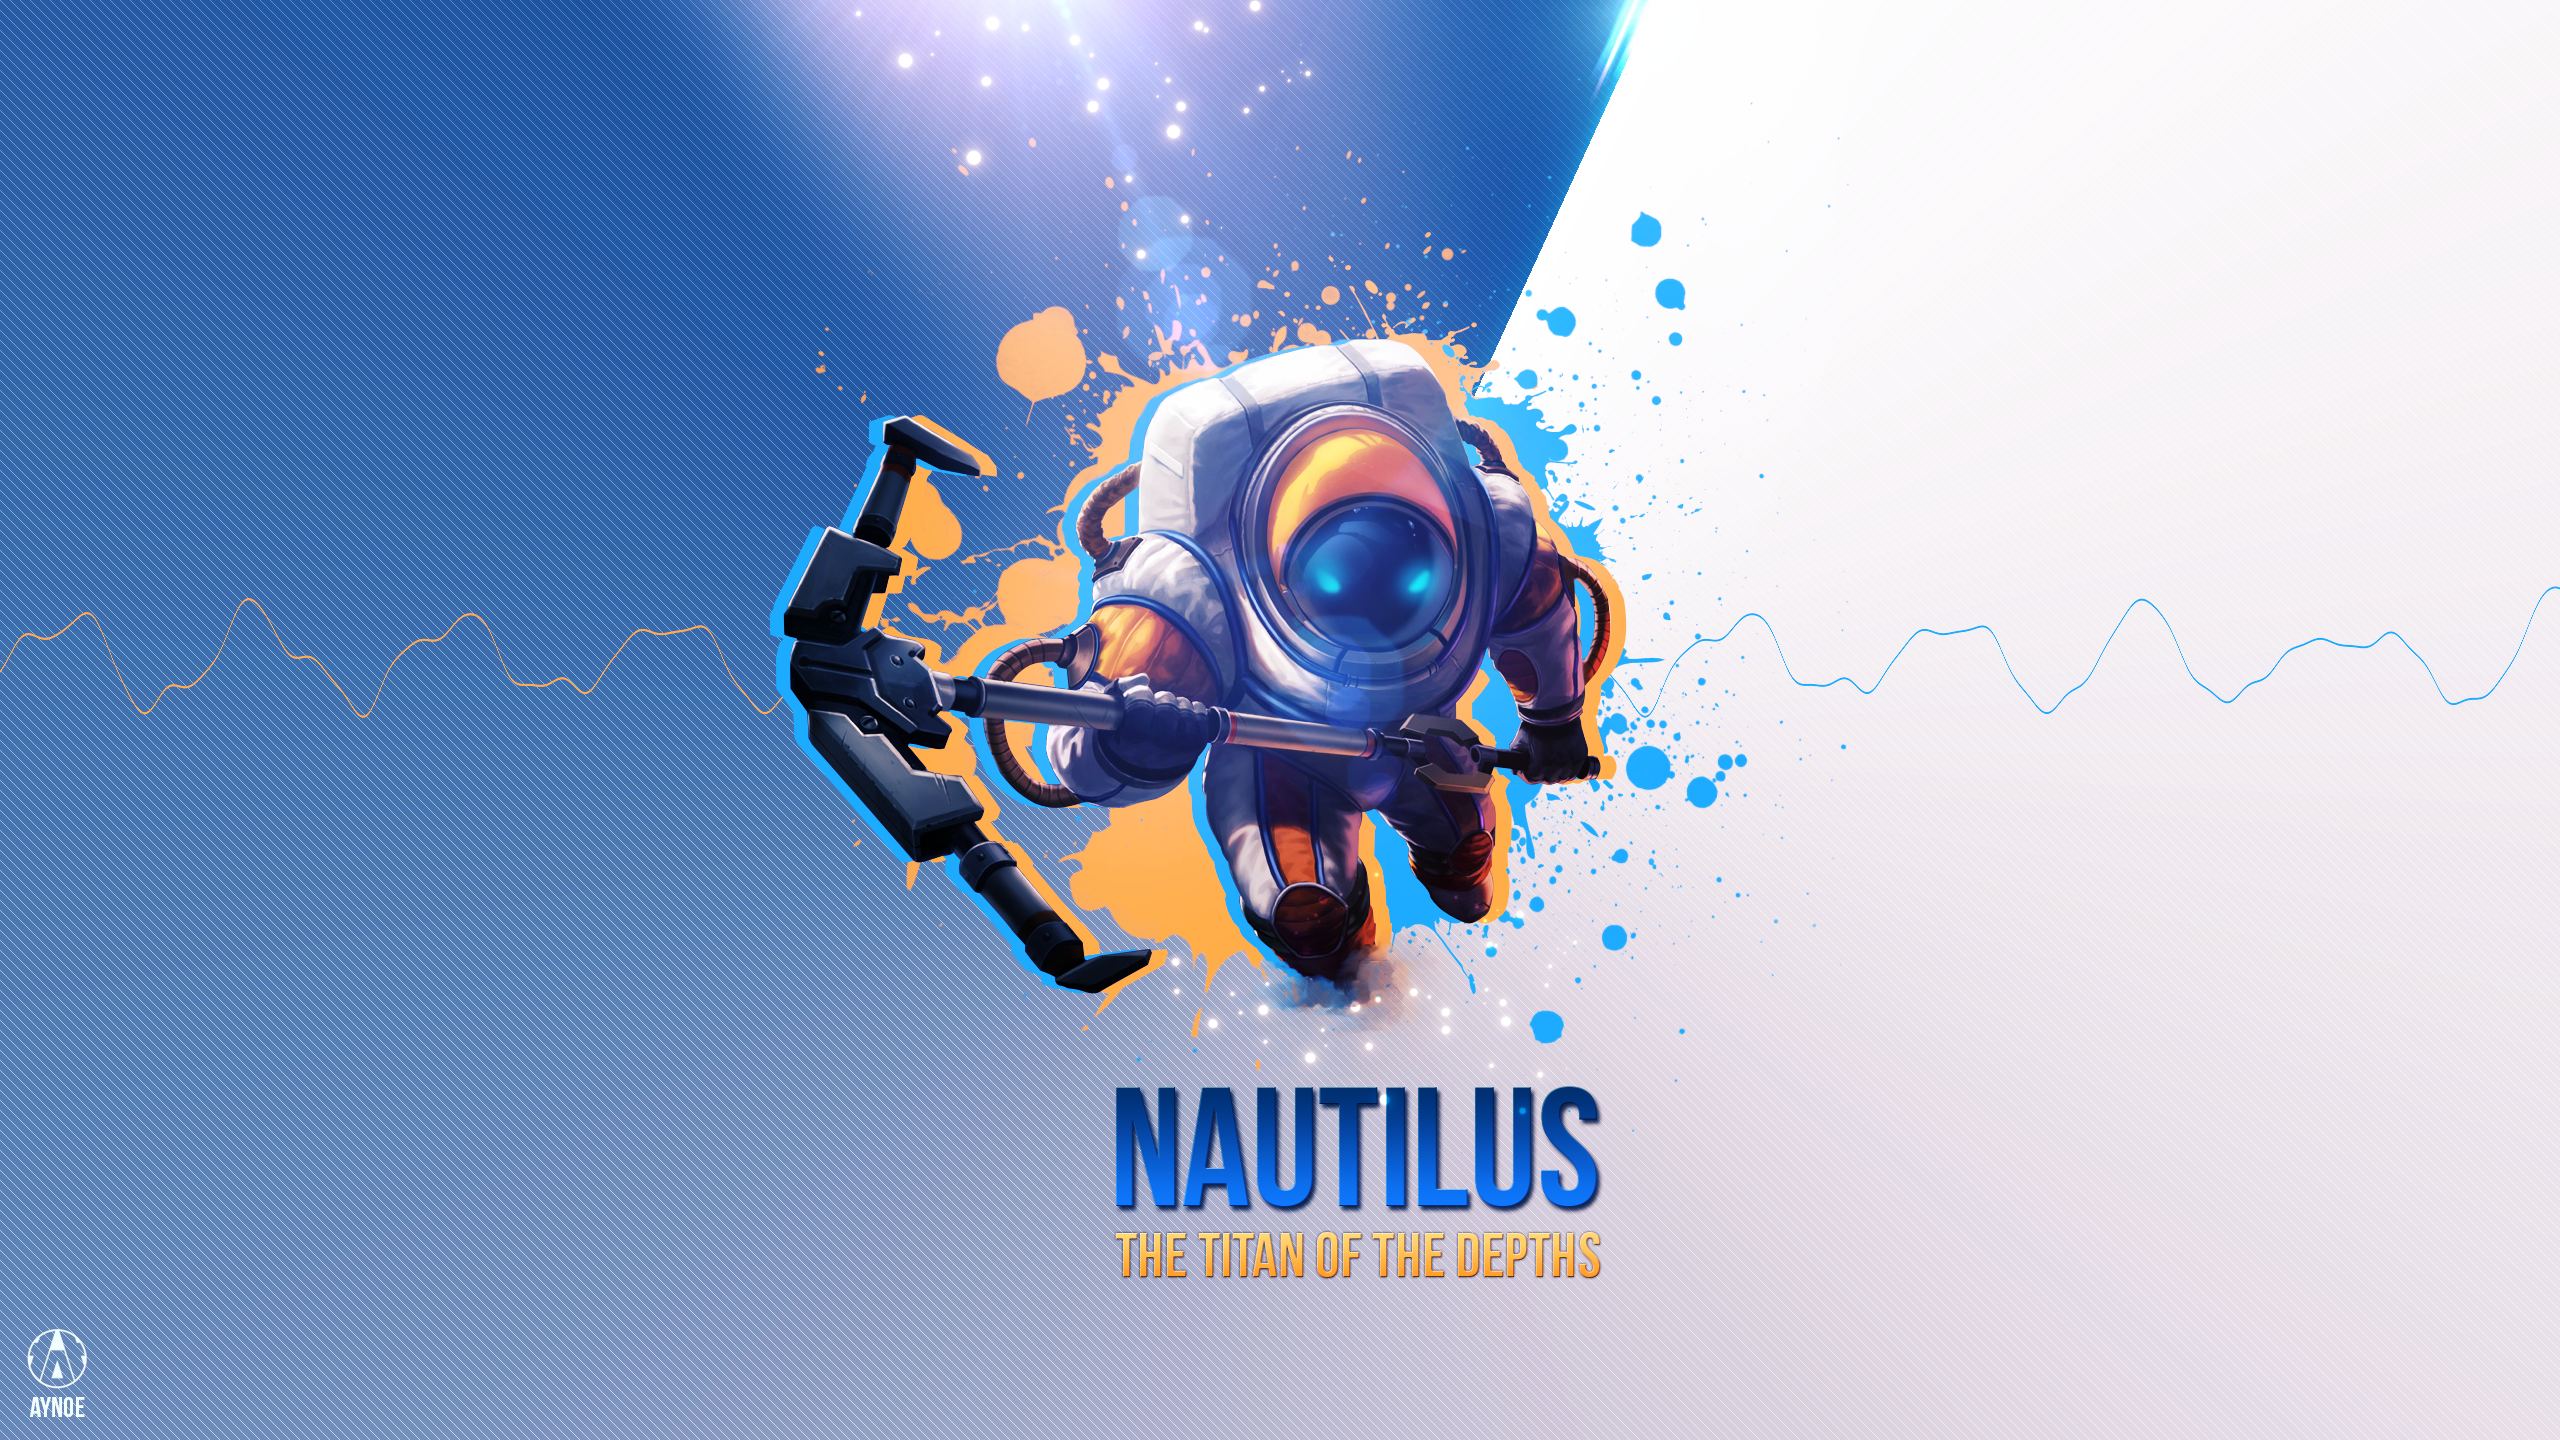 Nautilus (05/12/2014, 2 Mb) - B.SCB Wallpapers